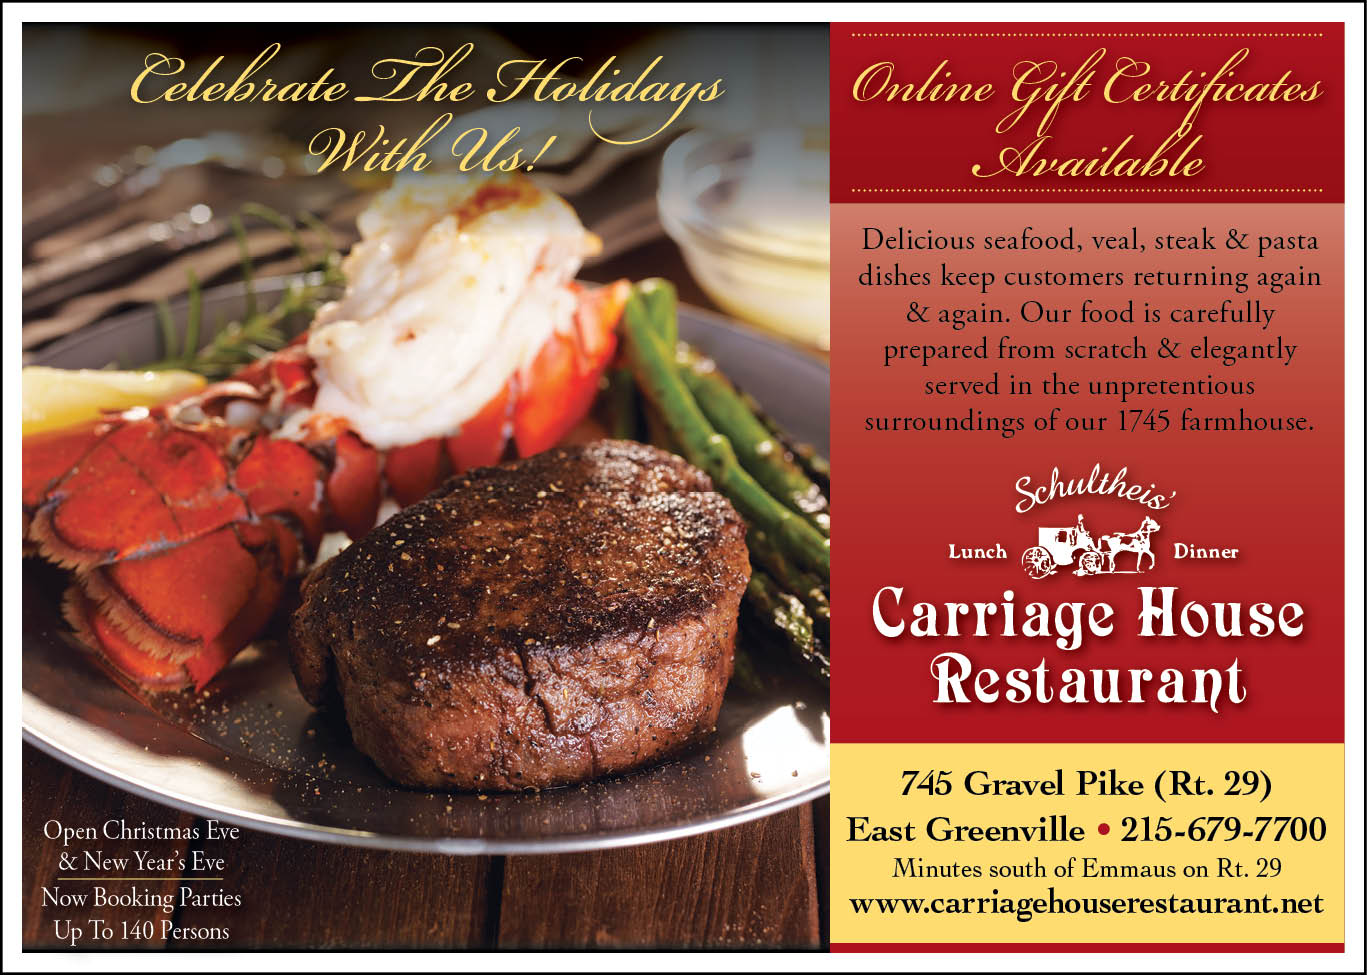 Holiday Events at the Carriage House